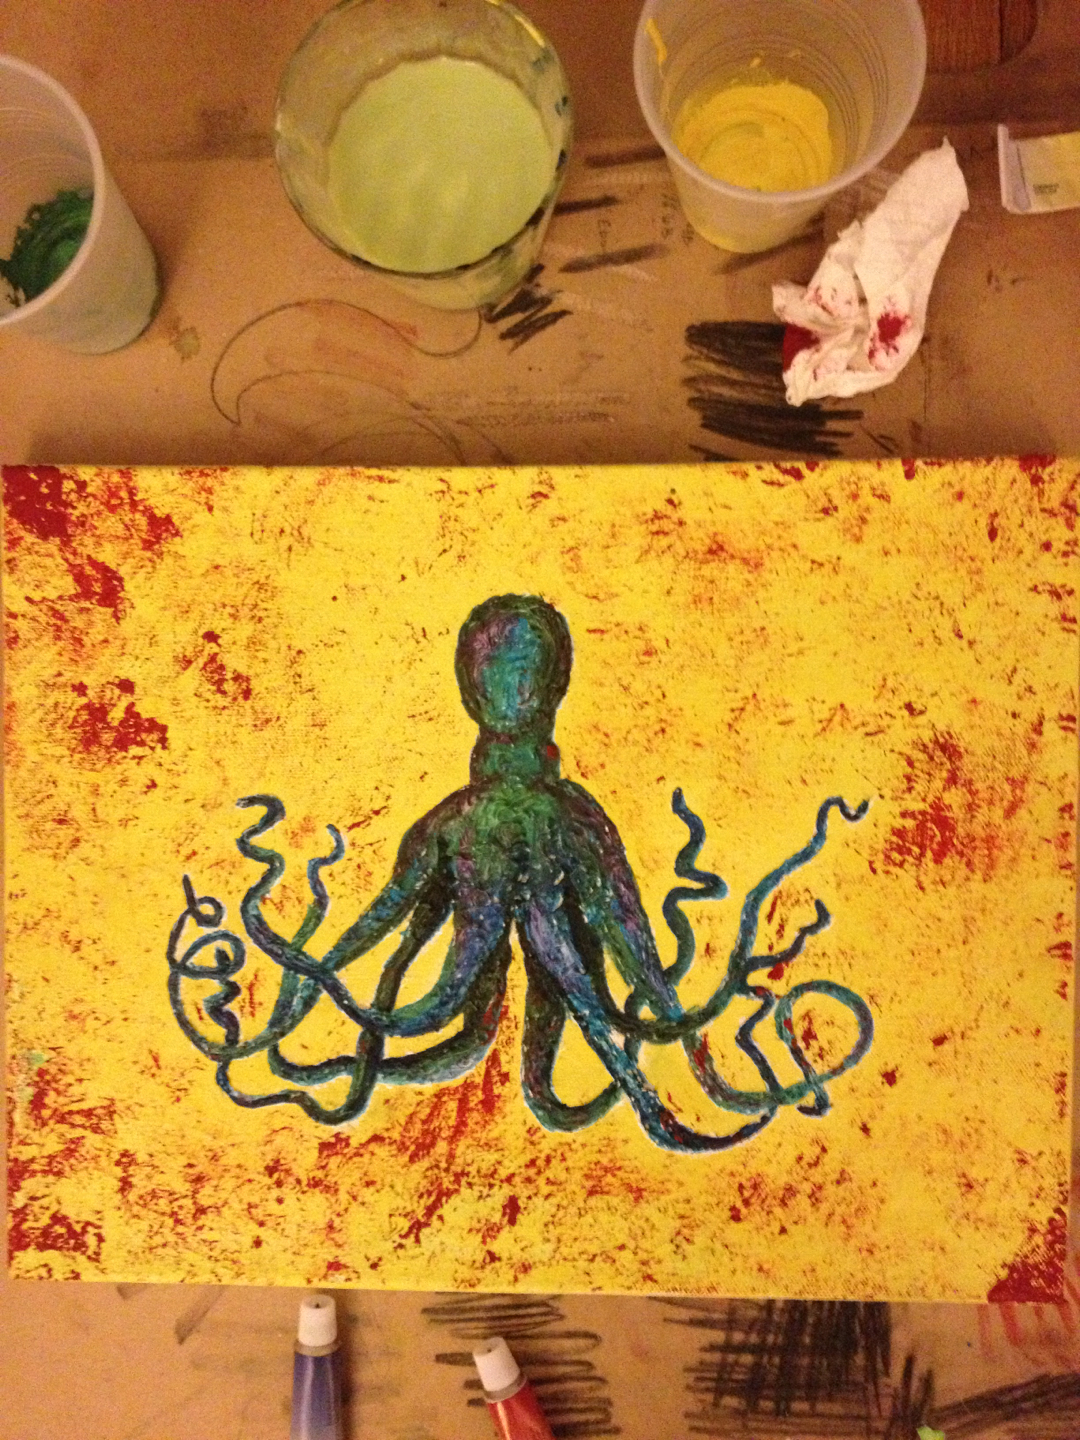 I painted an octopus. Mixed paint medium — gauche, acrylic, gesso (also acrylic) and oil paints.